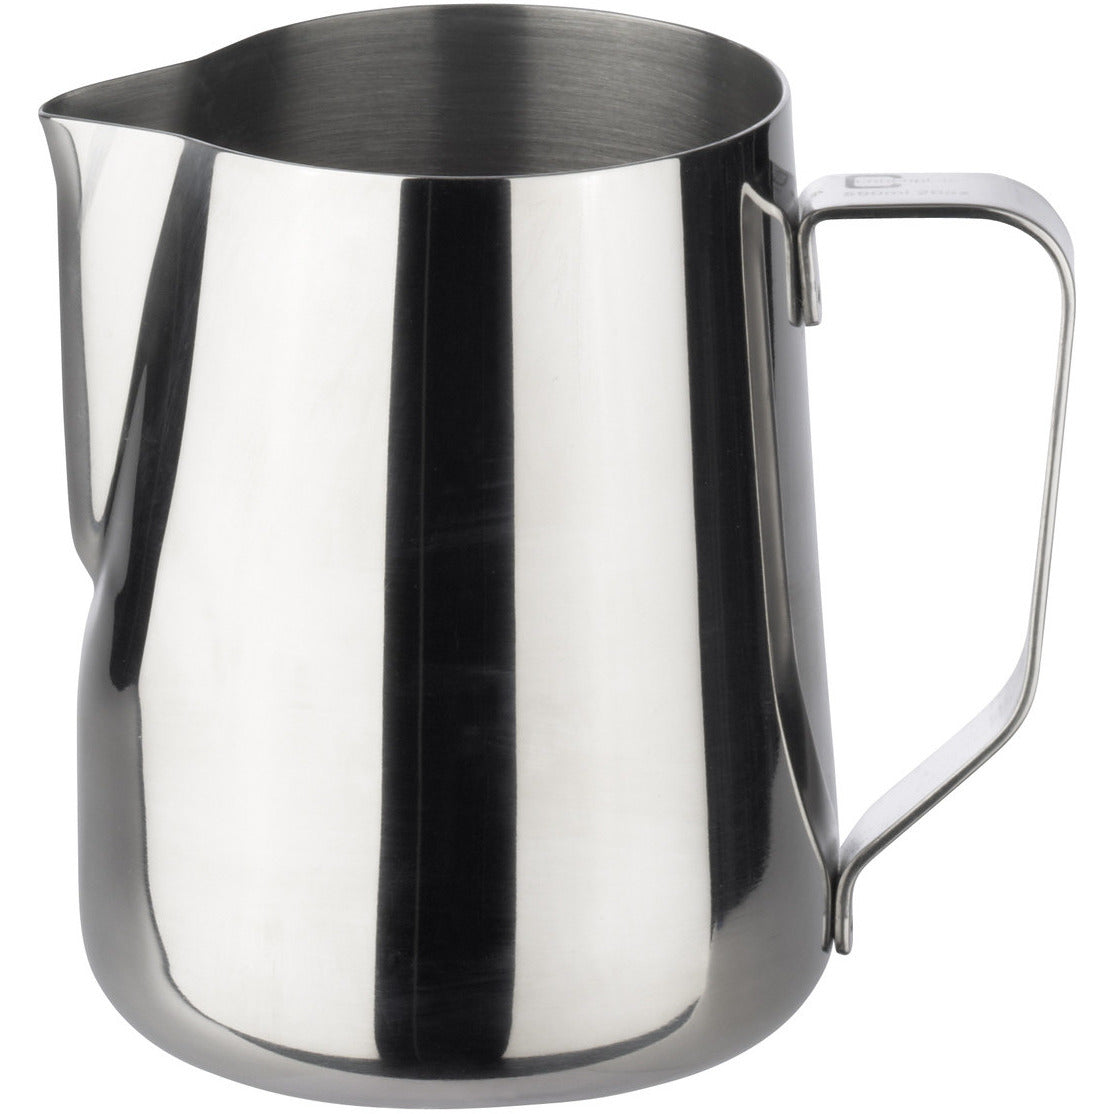 Stainless Steel Pitcher by Joe Frex - My Espresso Shop